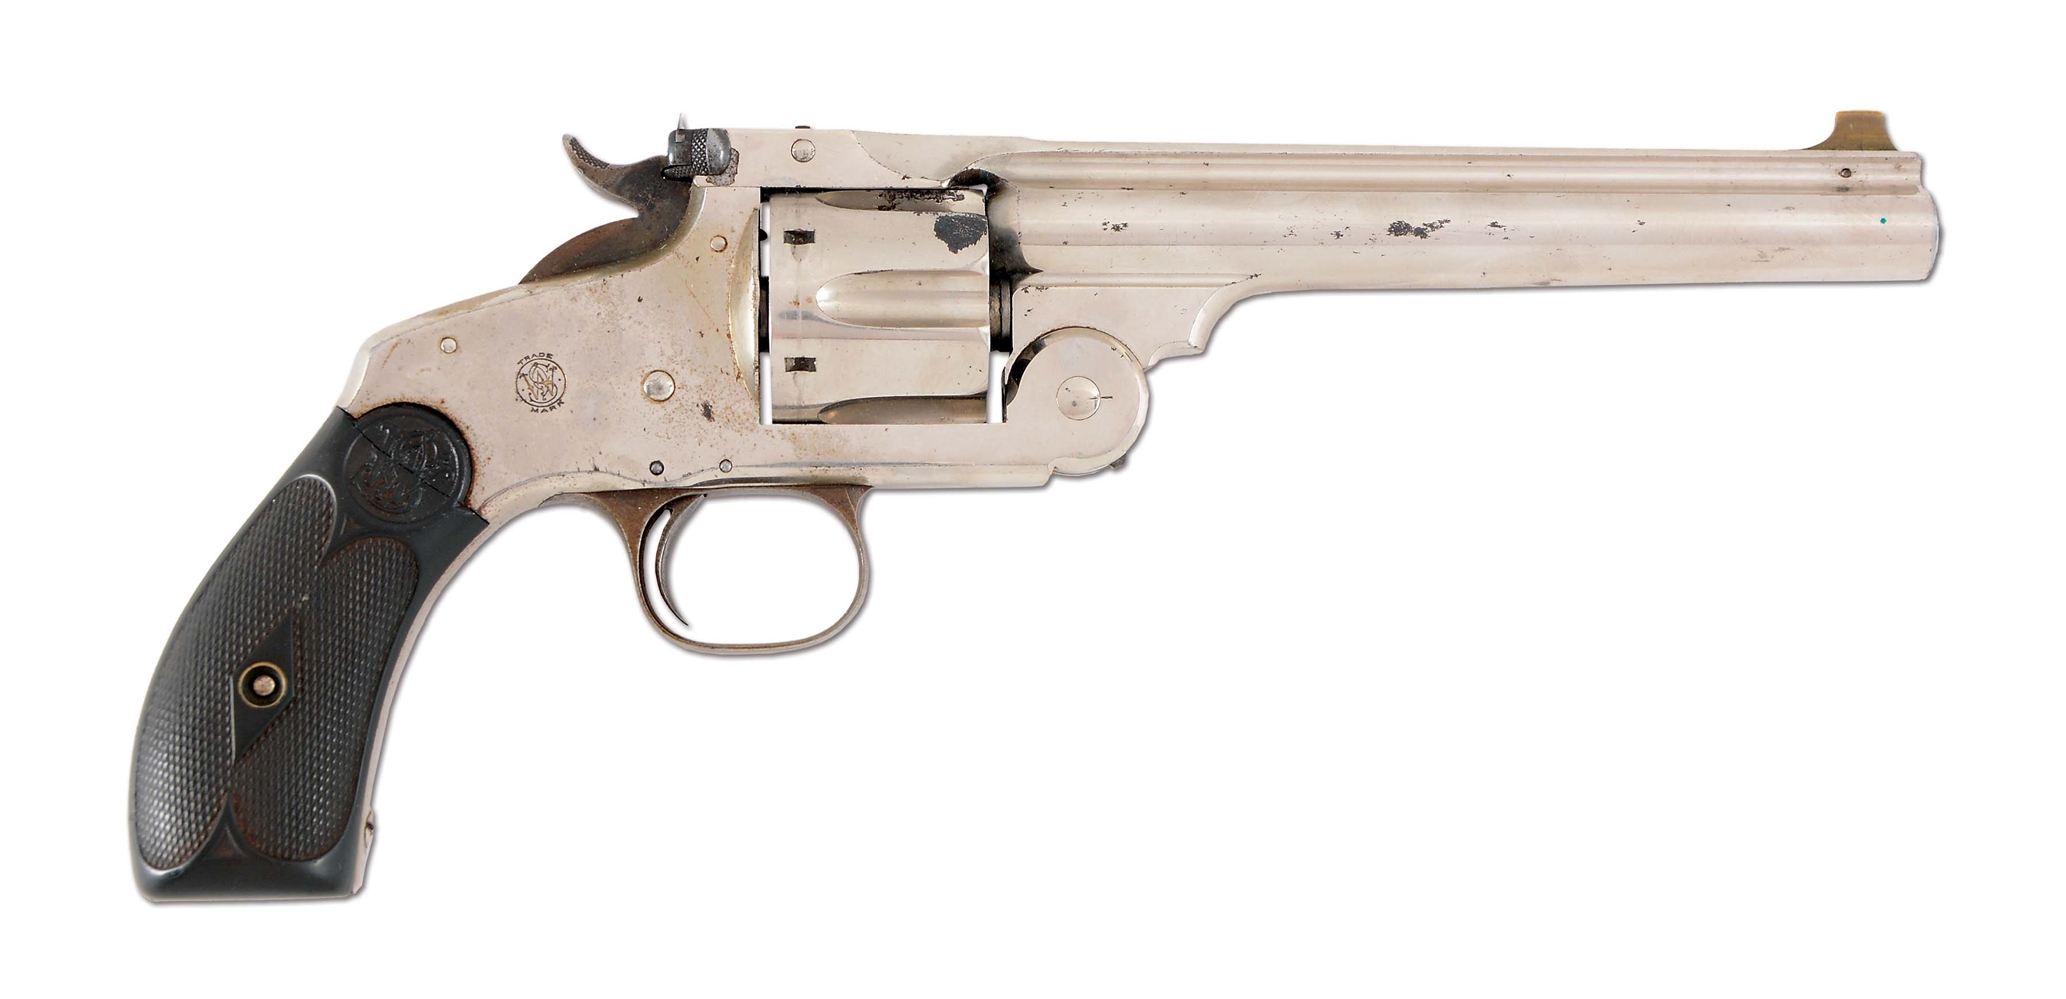 (A) SMITH & WESSON NEW MODEL NUMBER 3 TARGET .38-44 REVOLVER.